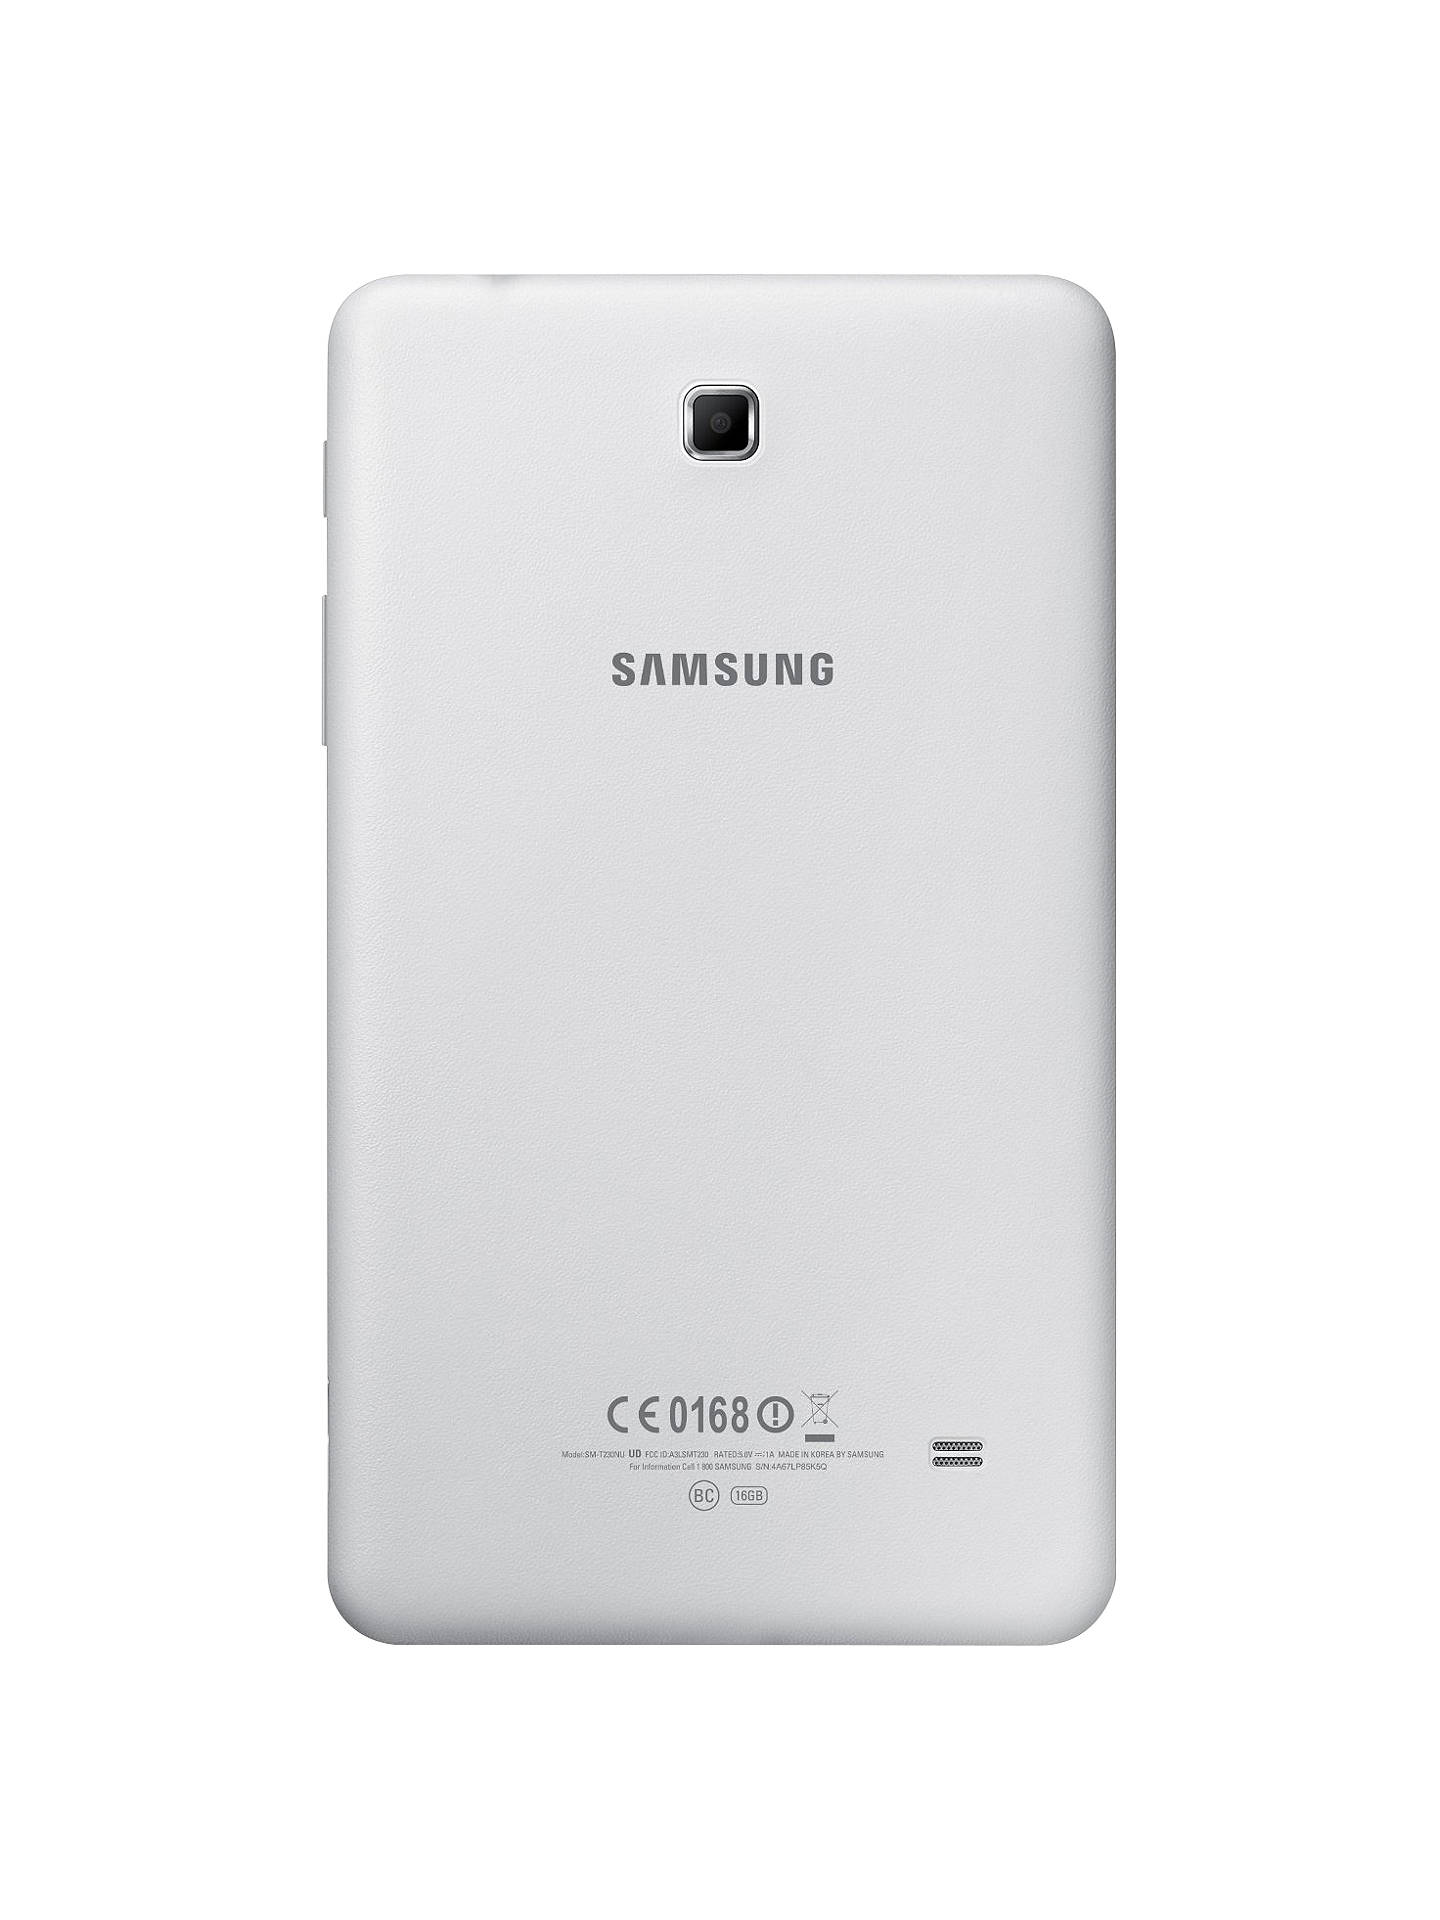 "Buy Samsung Galaxy Tab 4 7.0 Tablet, Quad-core Marvell PXA, Android, 7"", Wi-Fi, 8GB, White Online at johnlewis.com"